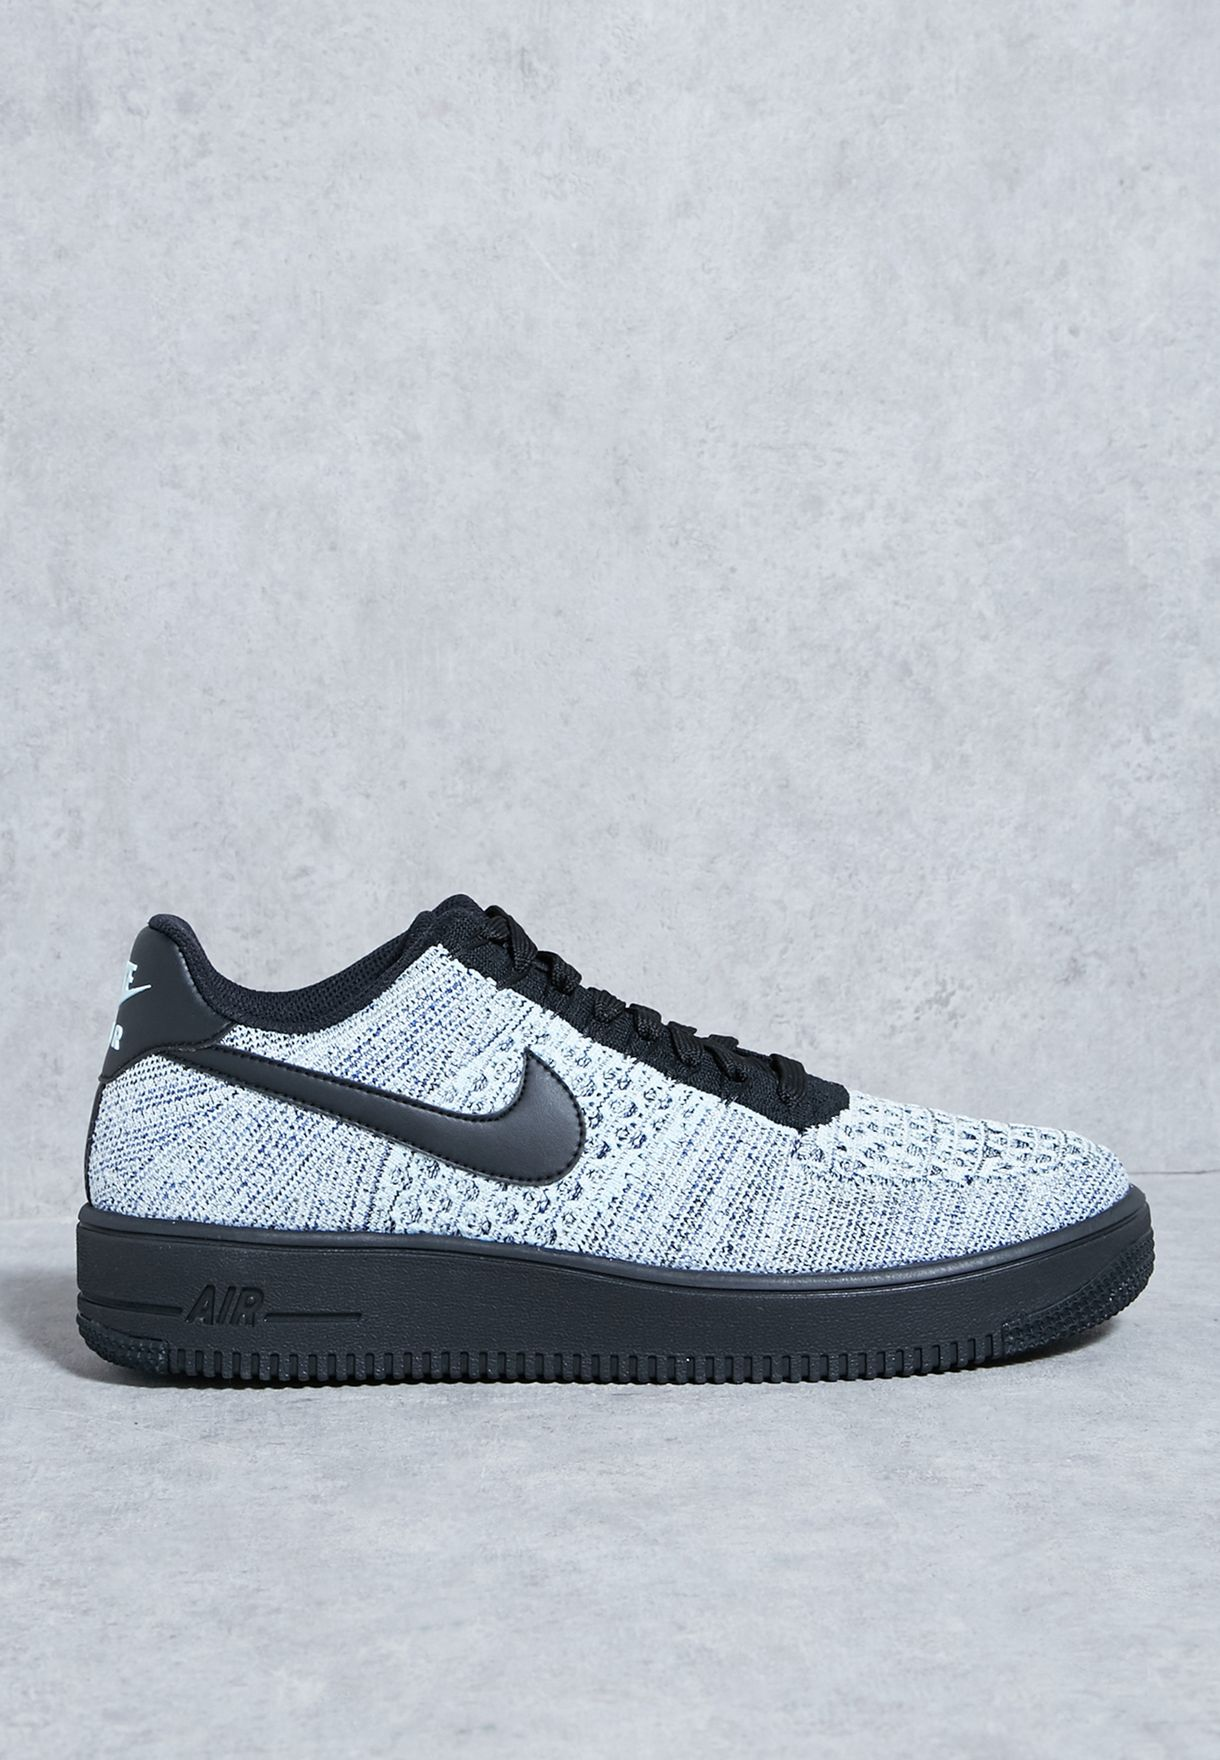 3048d49d7fe free shipping Shop Nike multicolor Air Force 1 Ultra Flyknit Low 817419401  for Men in UAE